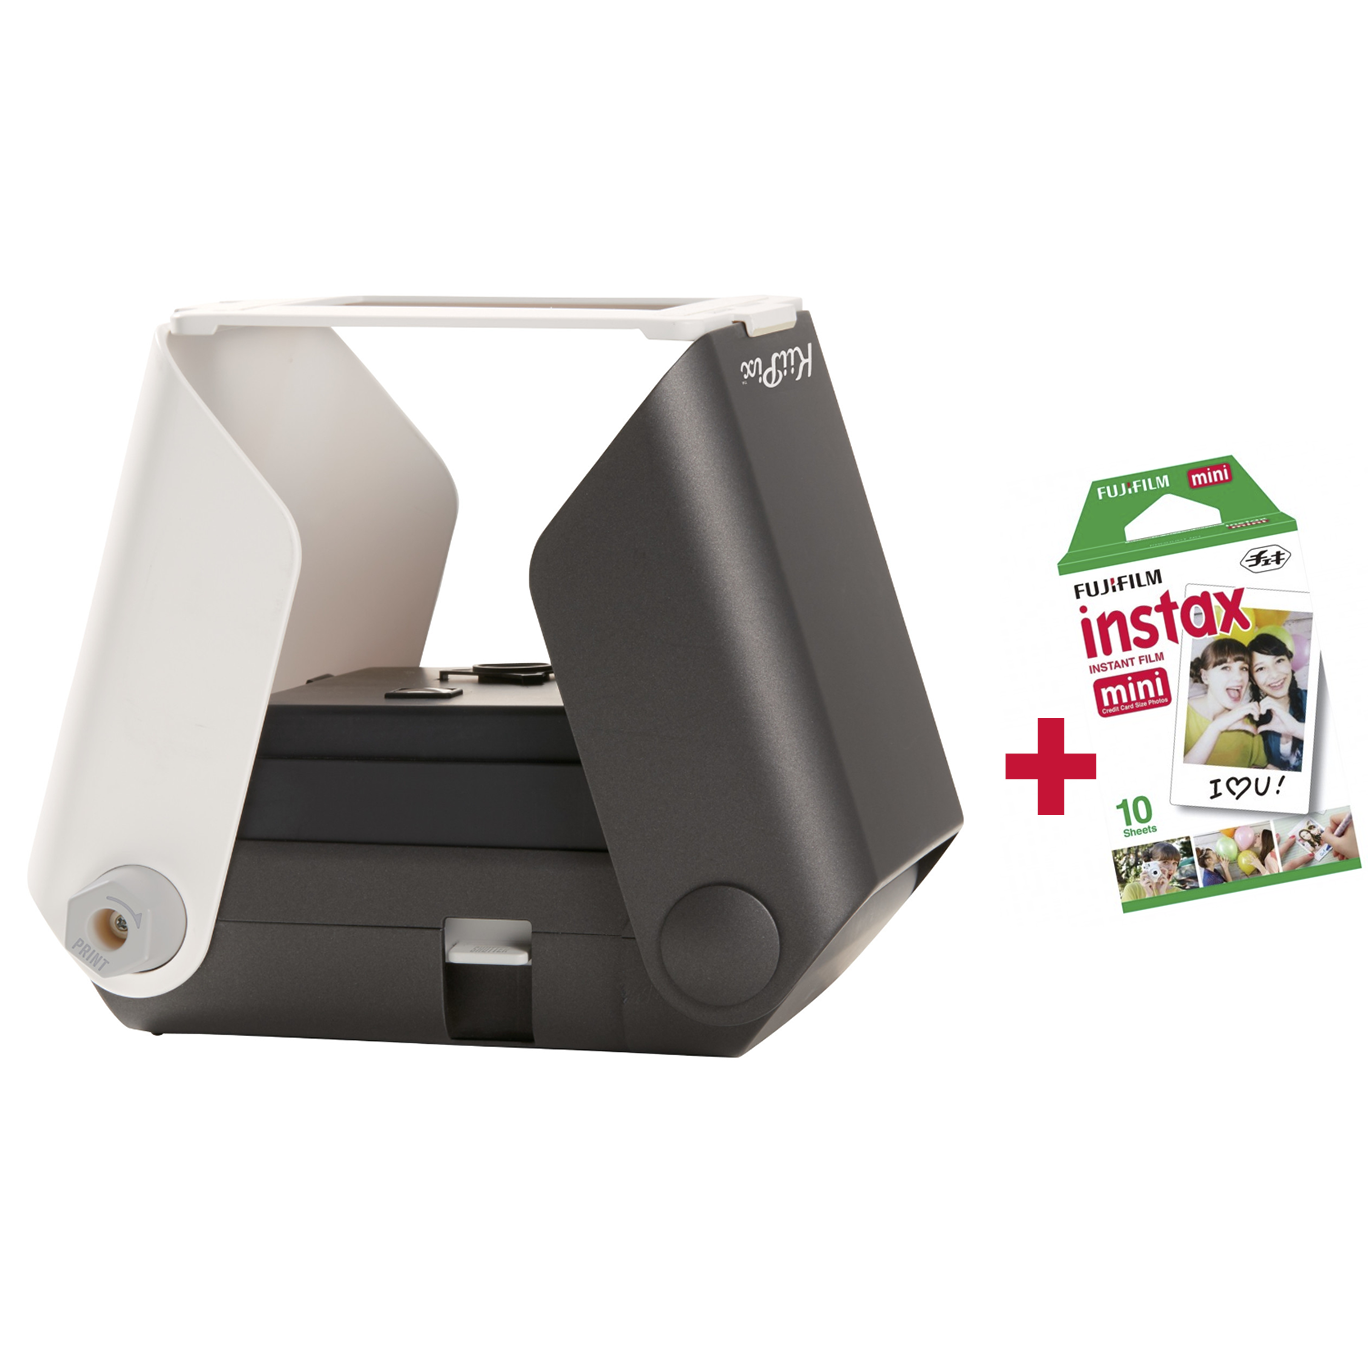 KiiPix SmartPhone Printer Instax Bundle - Jet Black